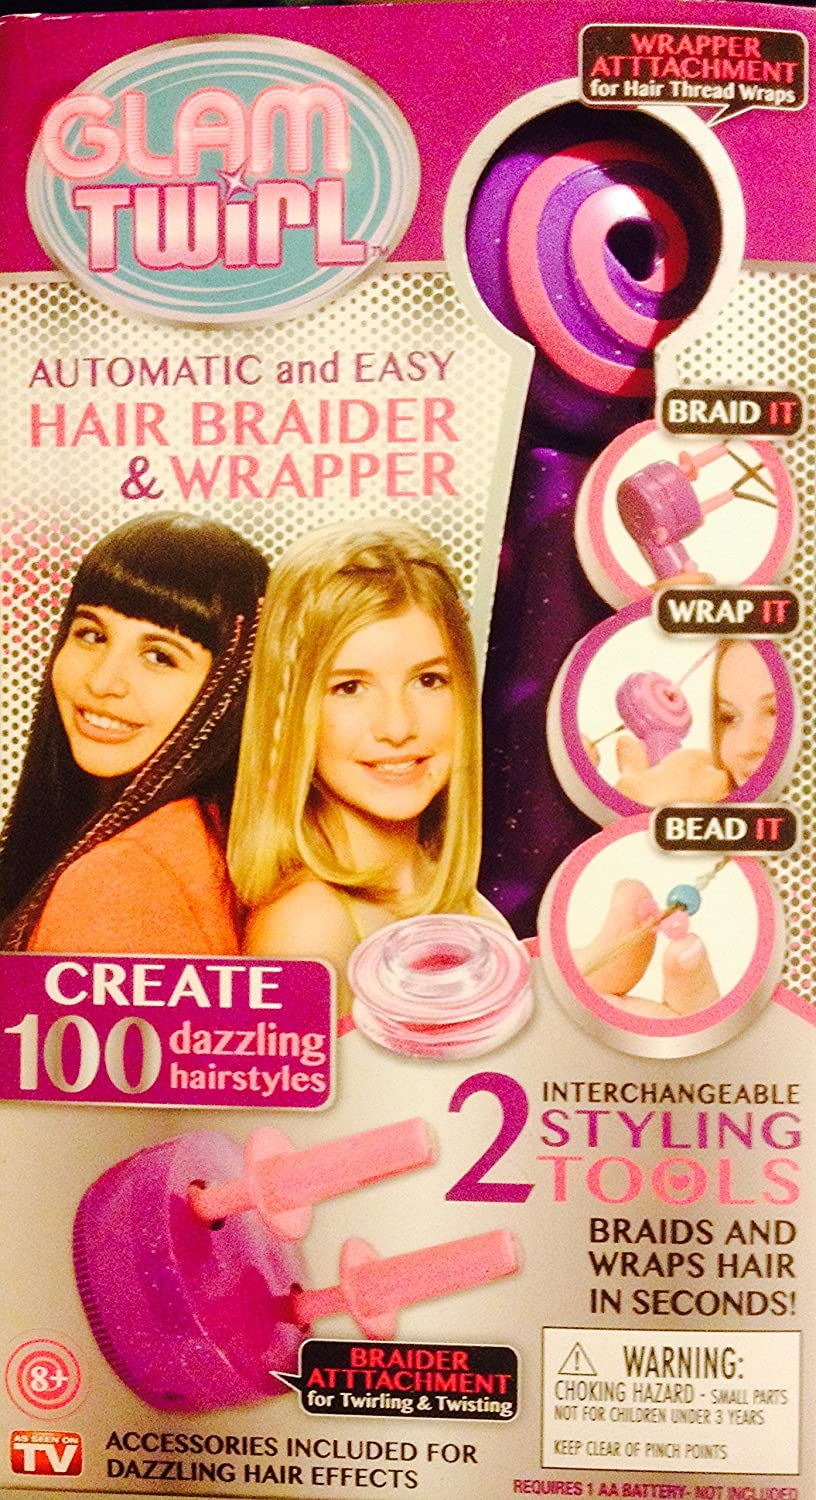 Automatic and Easy Hair Braider Wrapper